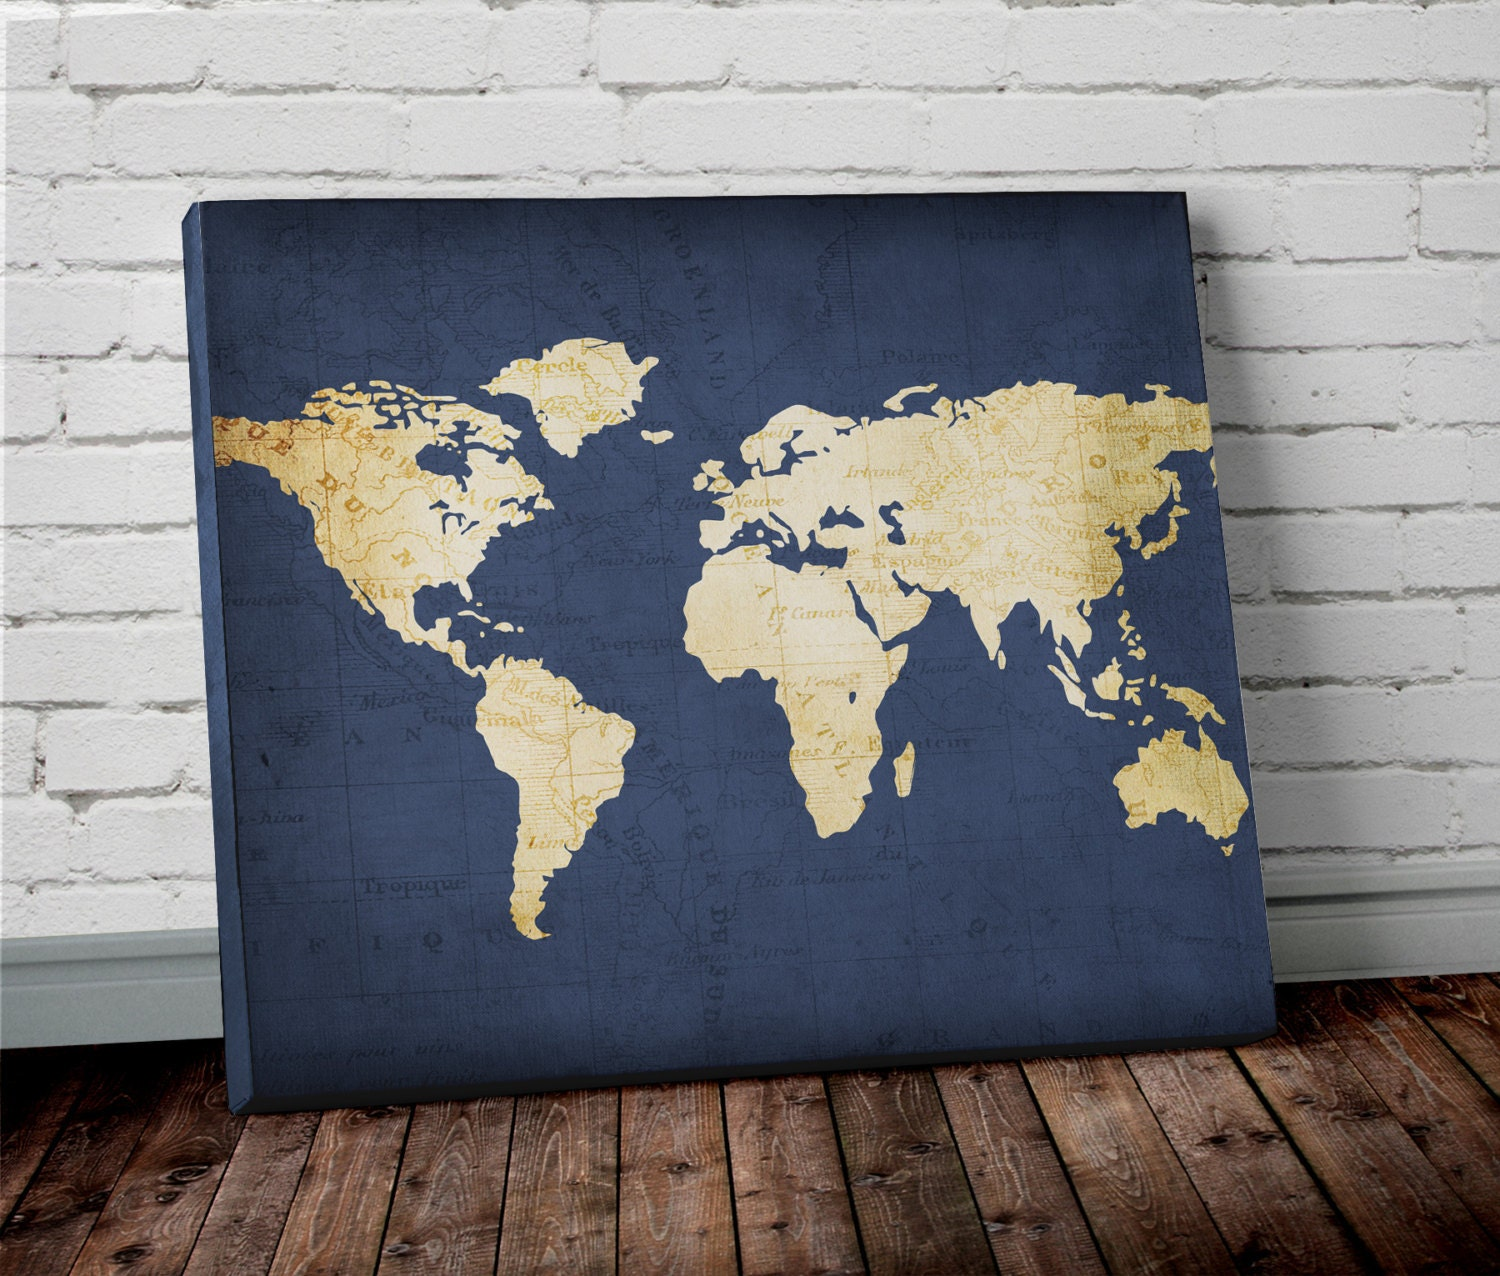 Navy WORLD MAP Wall ART Canvas World Map Print in Navy Blue | Etsy on